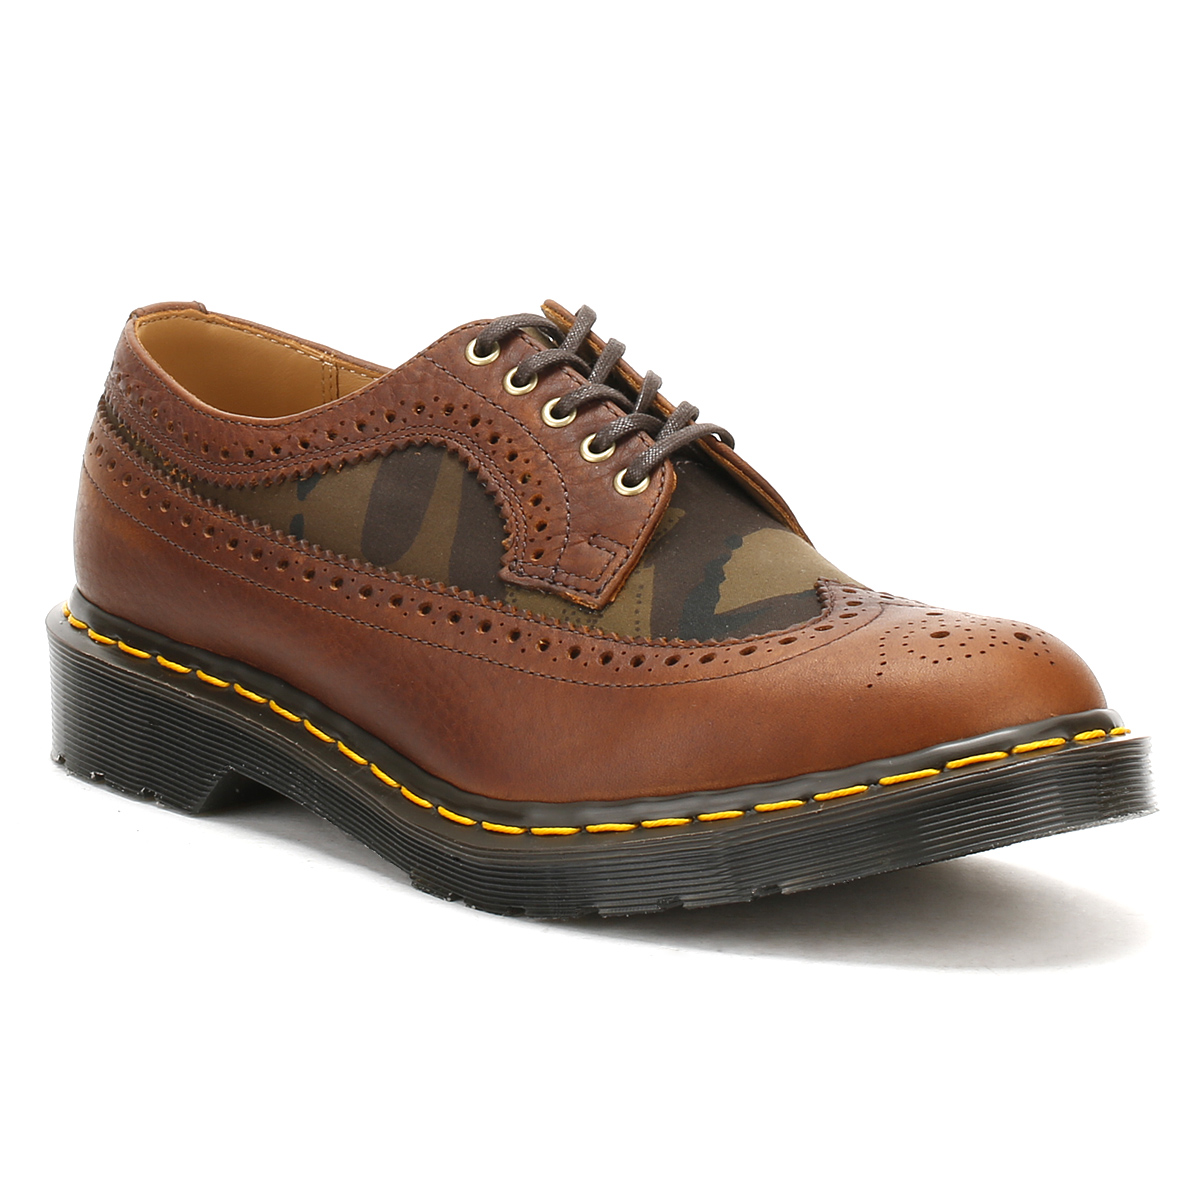 Dr. Martens  Herren Brogue Leder Schuhes, Dark Tan Braun Leder Brogue Smart Casual Docs d0c7d3